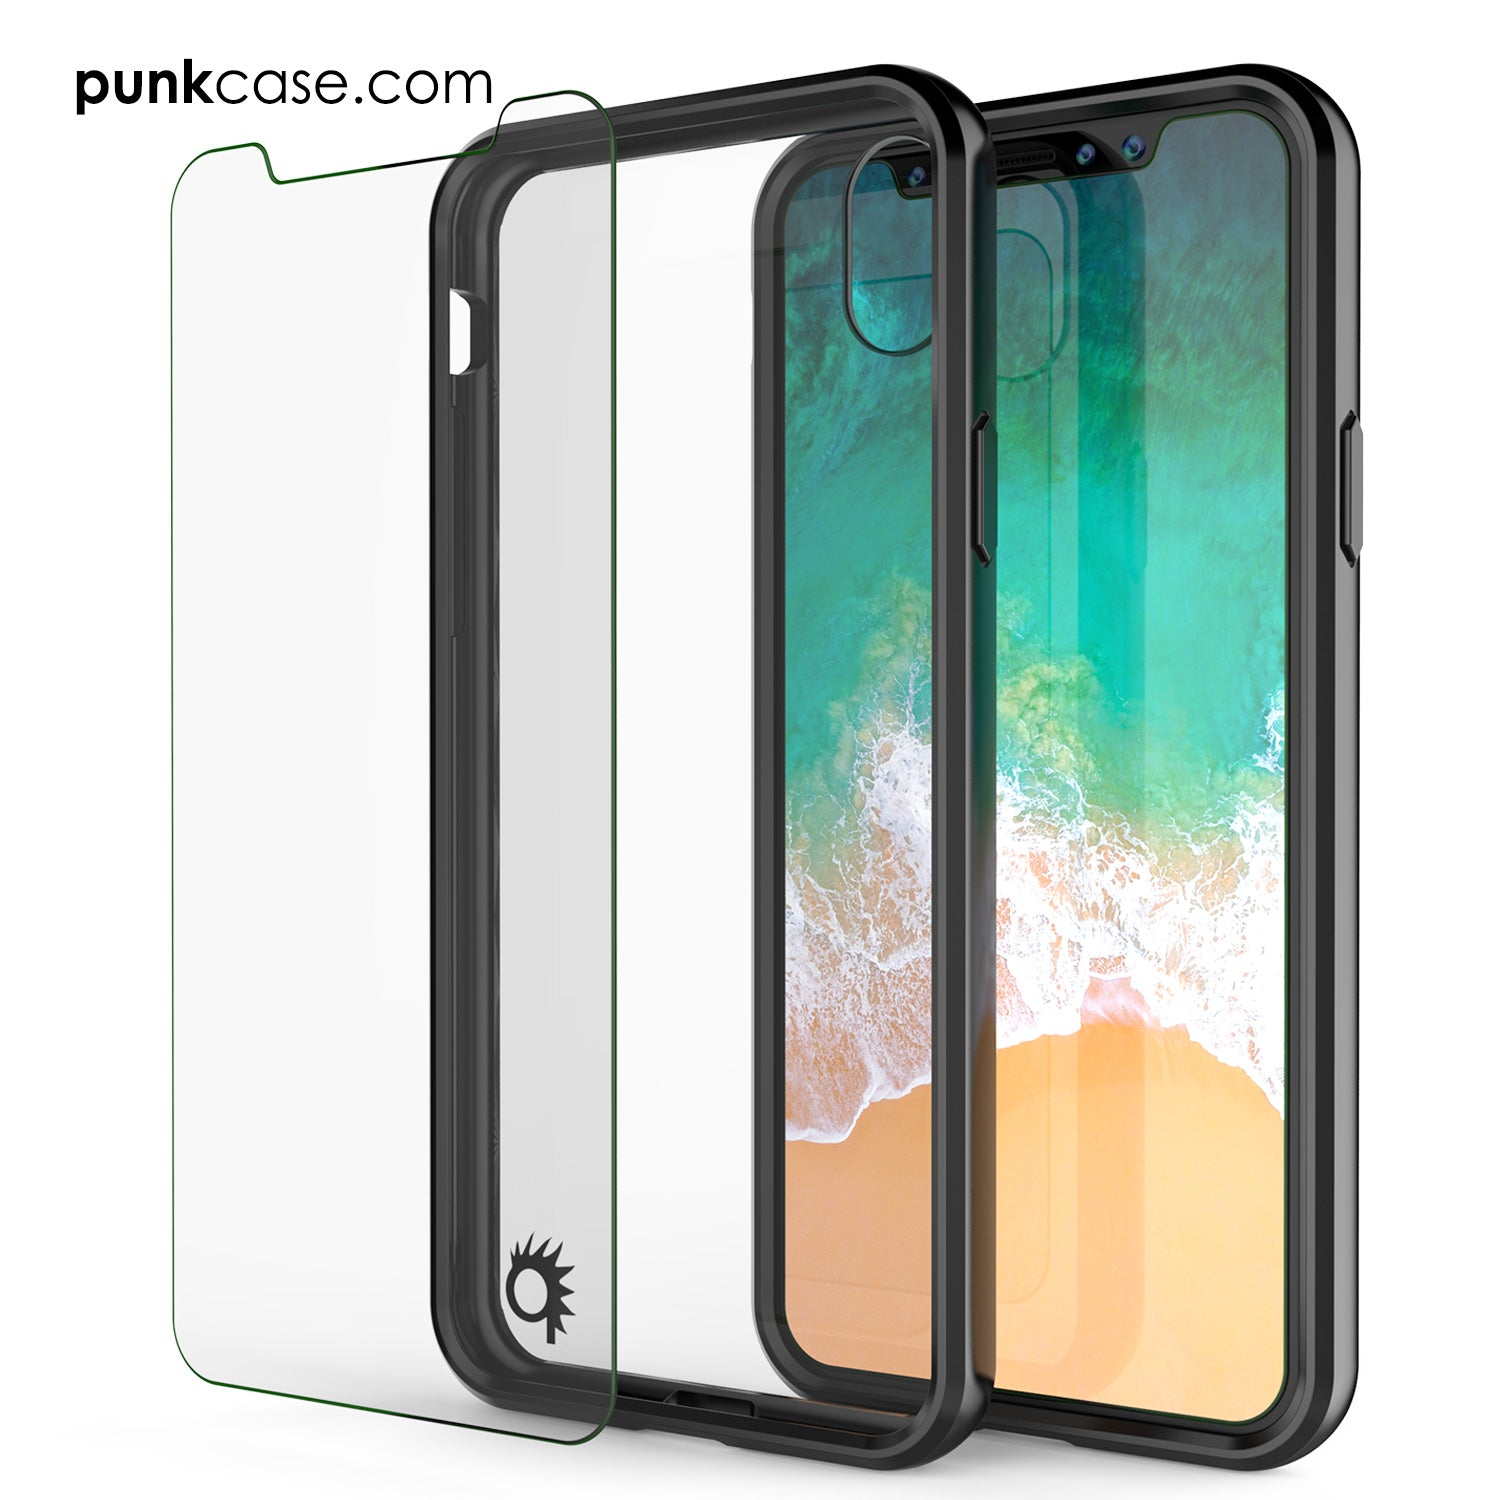 iPhone X Case, PUNKcase [LUCID 2.0 Series] [Slim Fit] Armor Cover W/Integrated Anti-Shock System [Black]